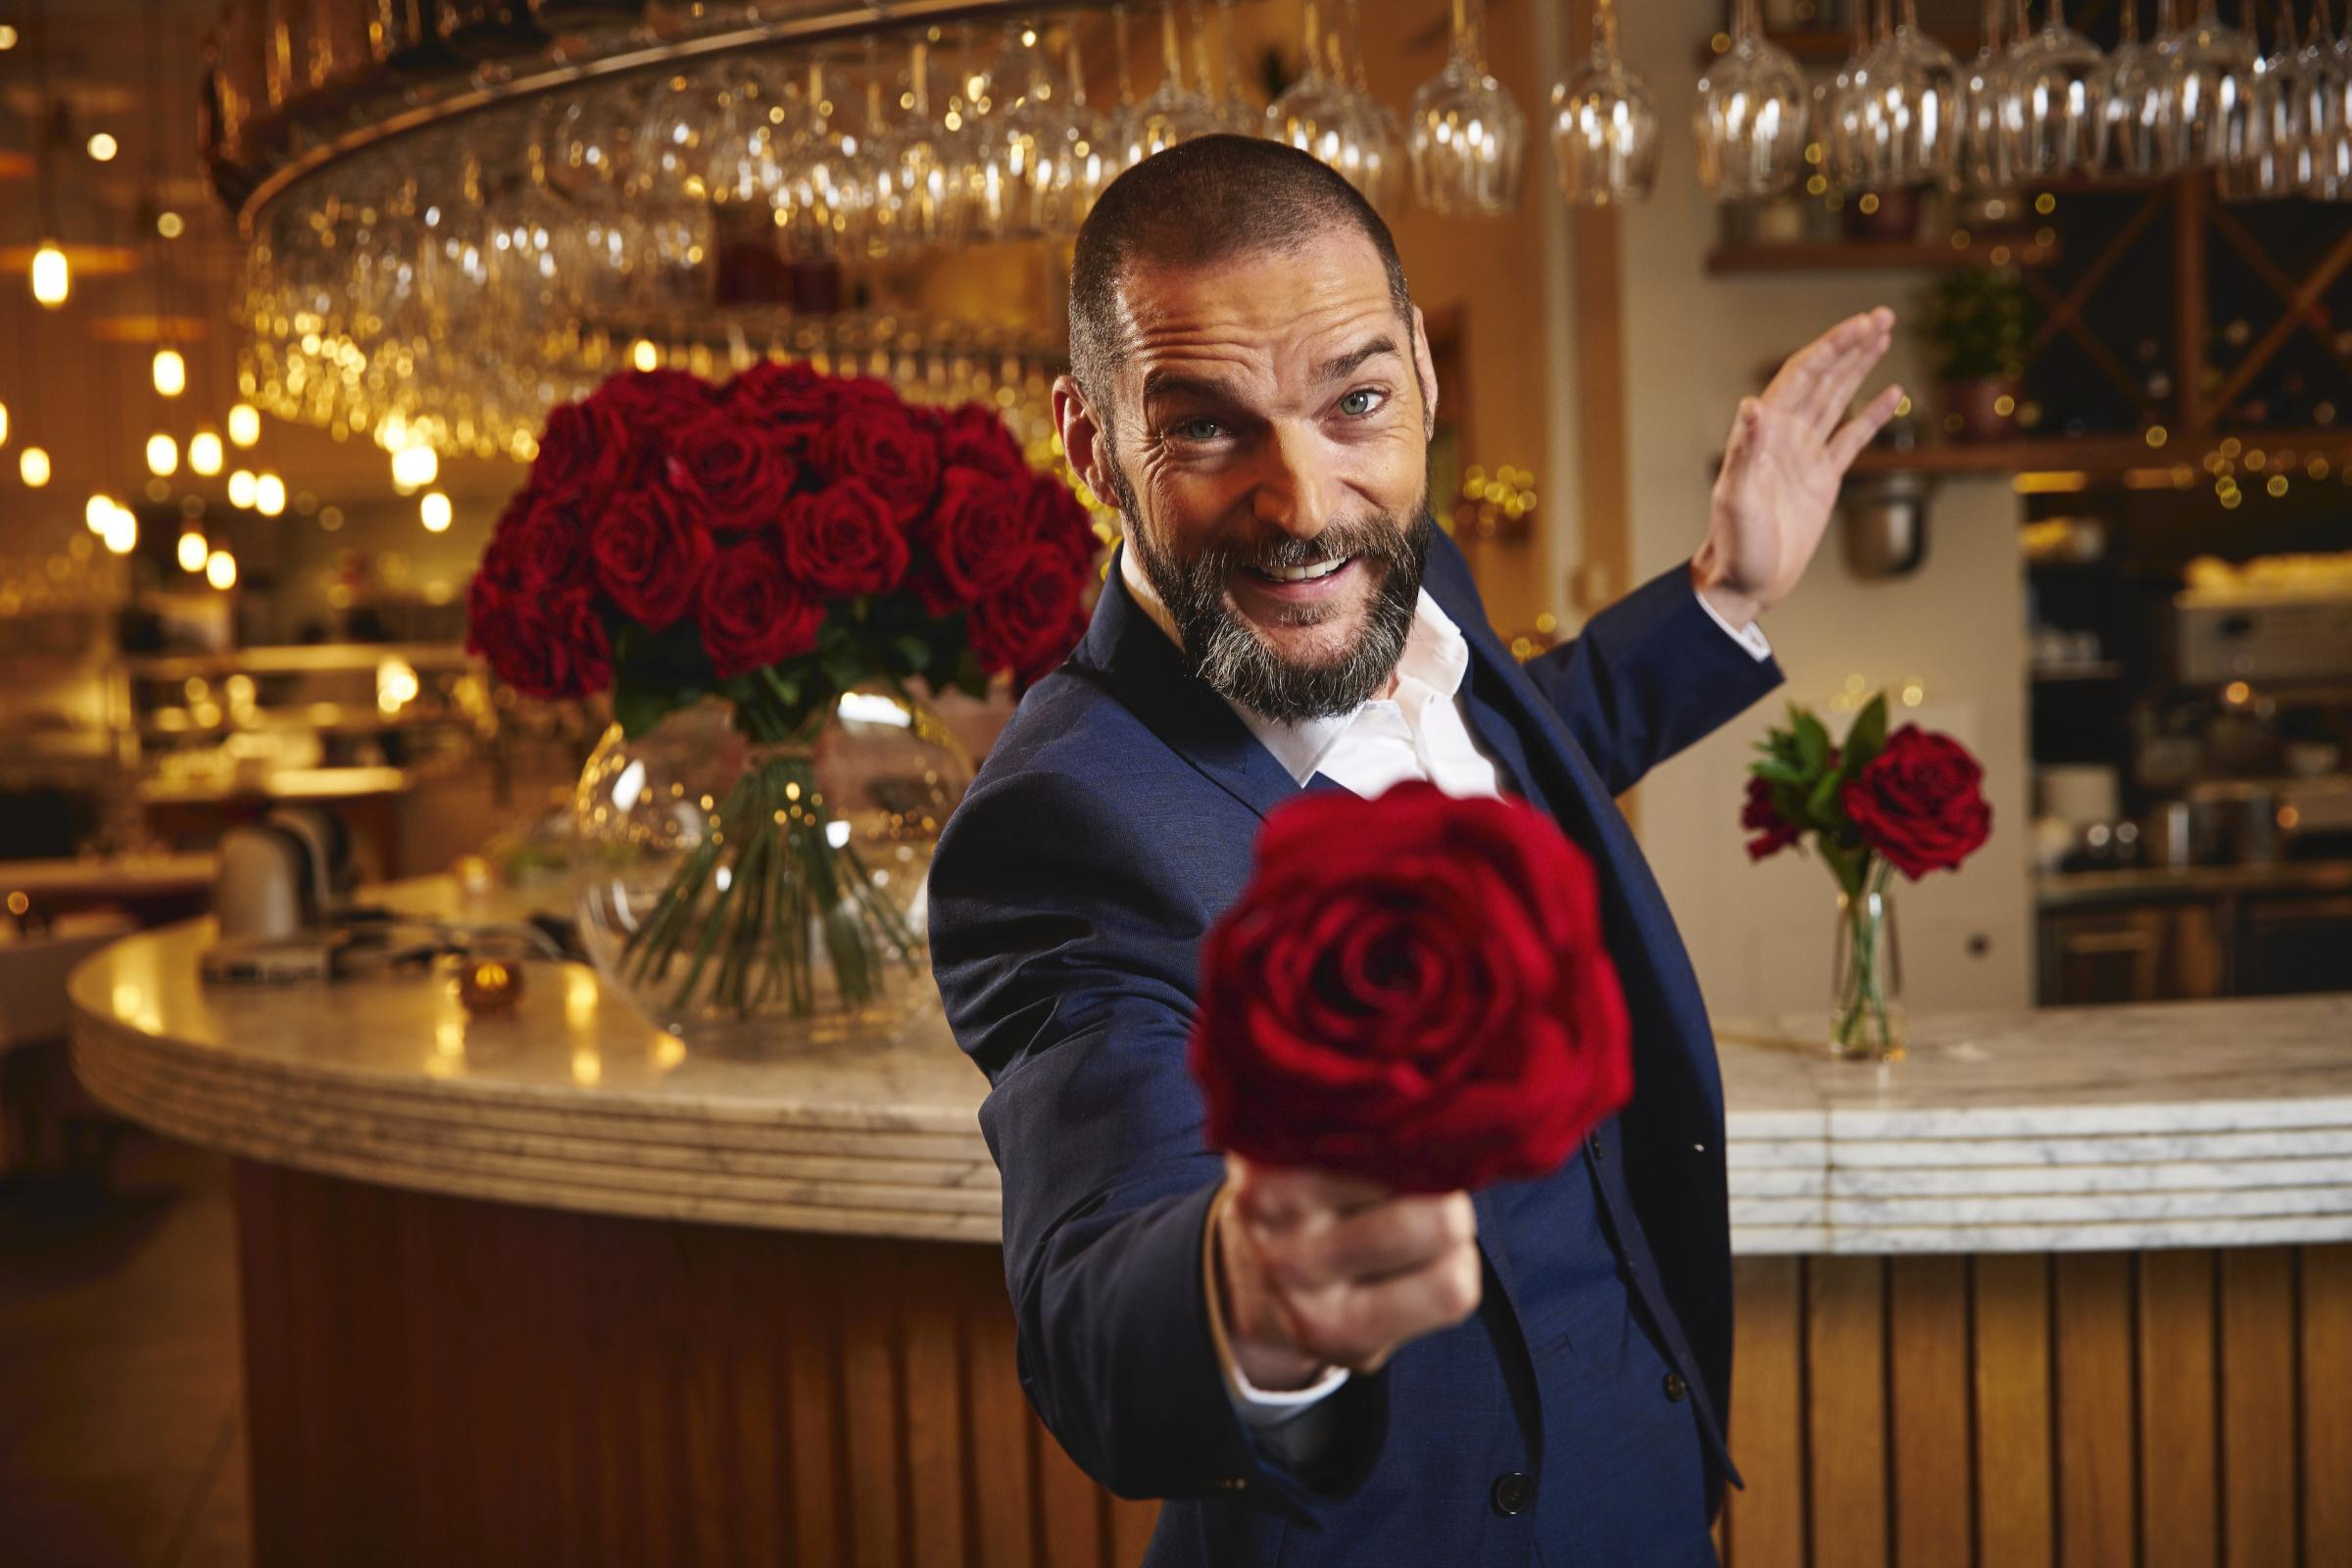 First Dates is looking for singletons to apply for a new series